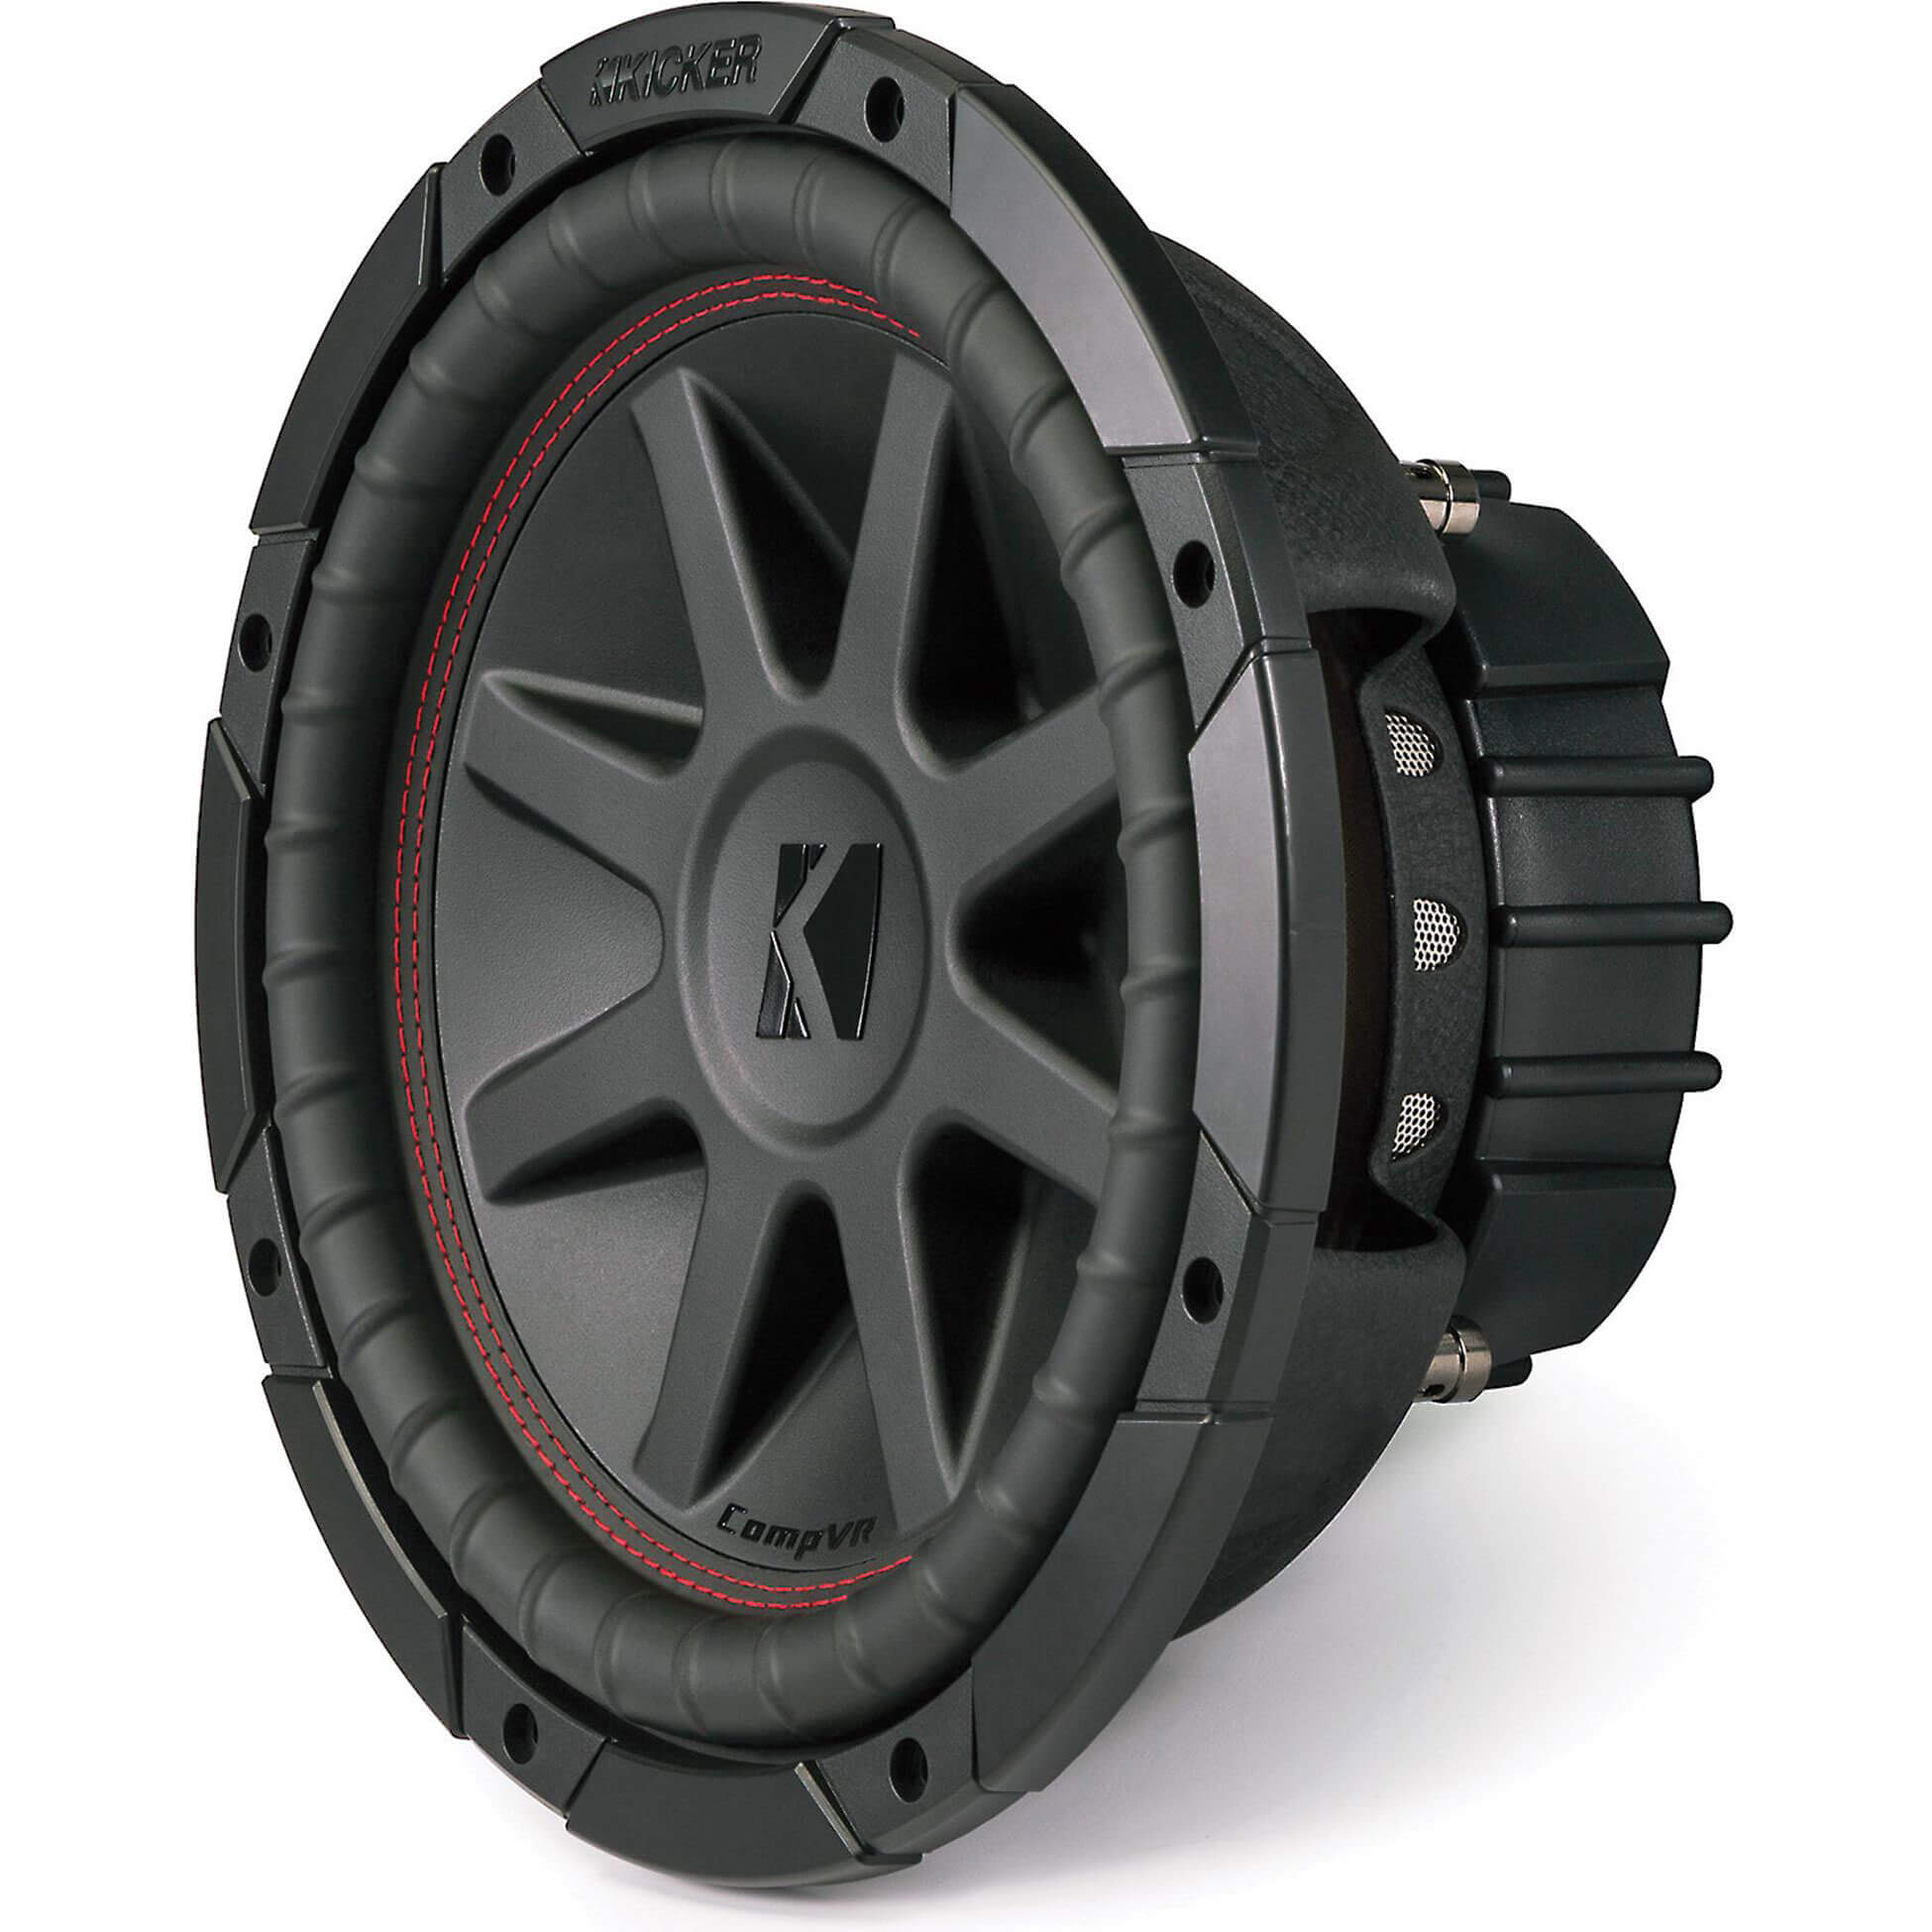 10 inch subwoofer with dual 4-ohm voice coils